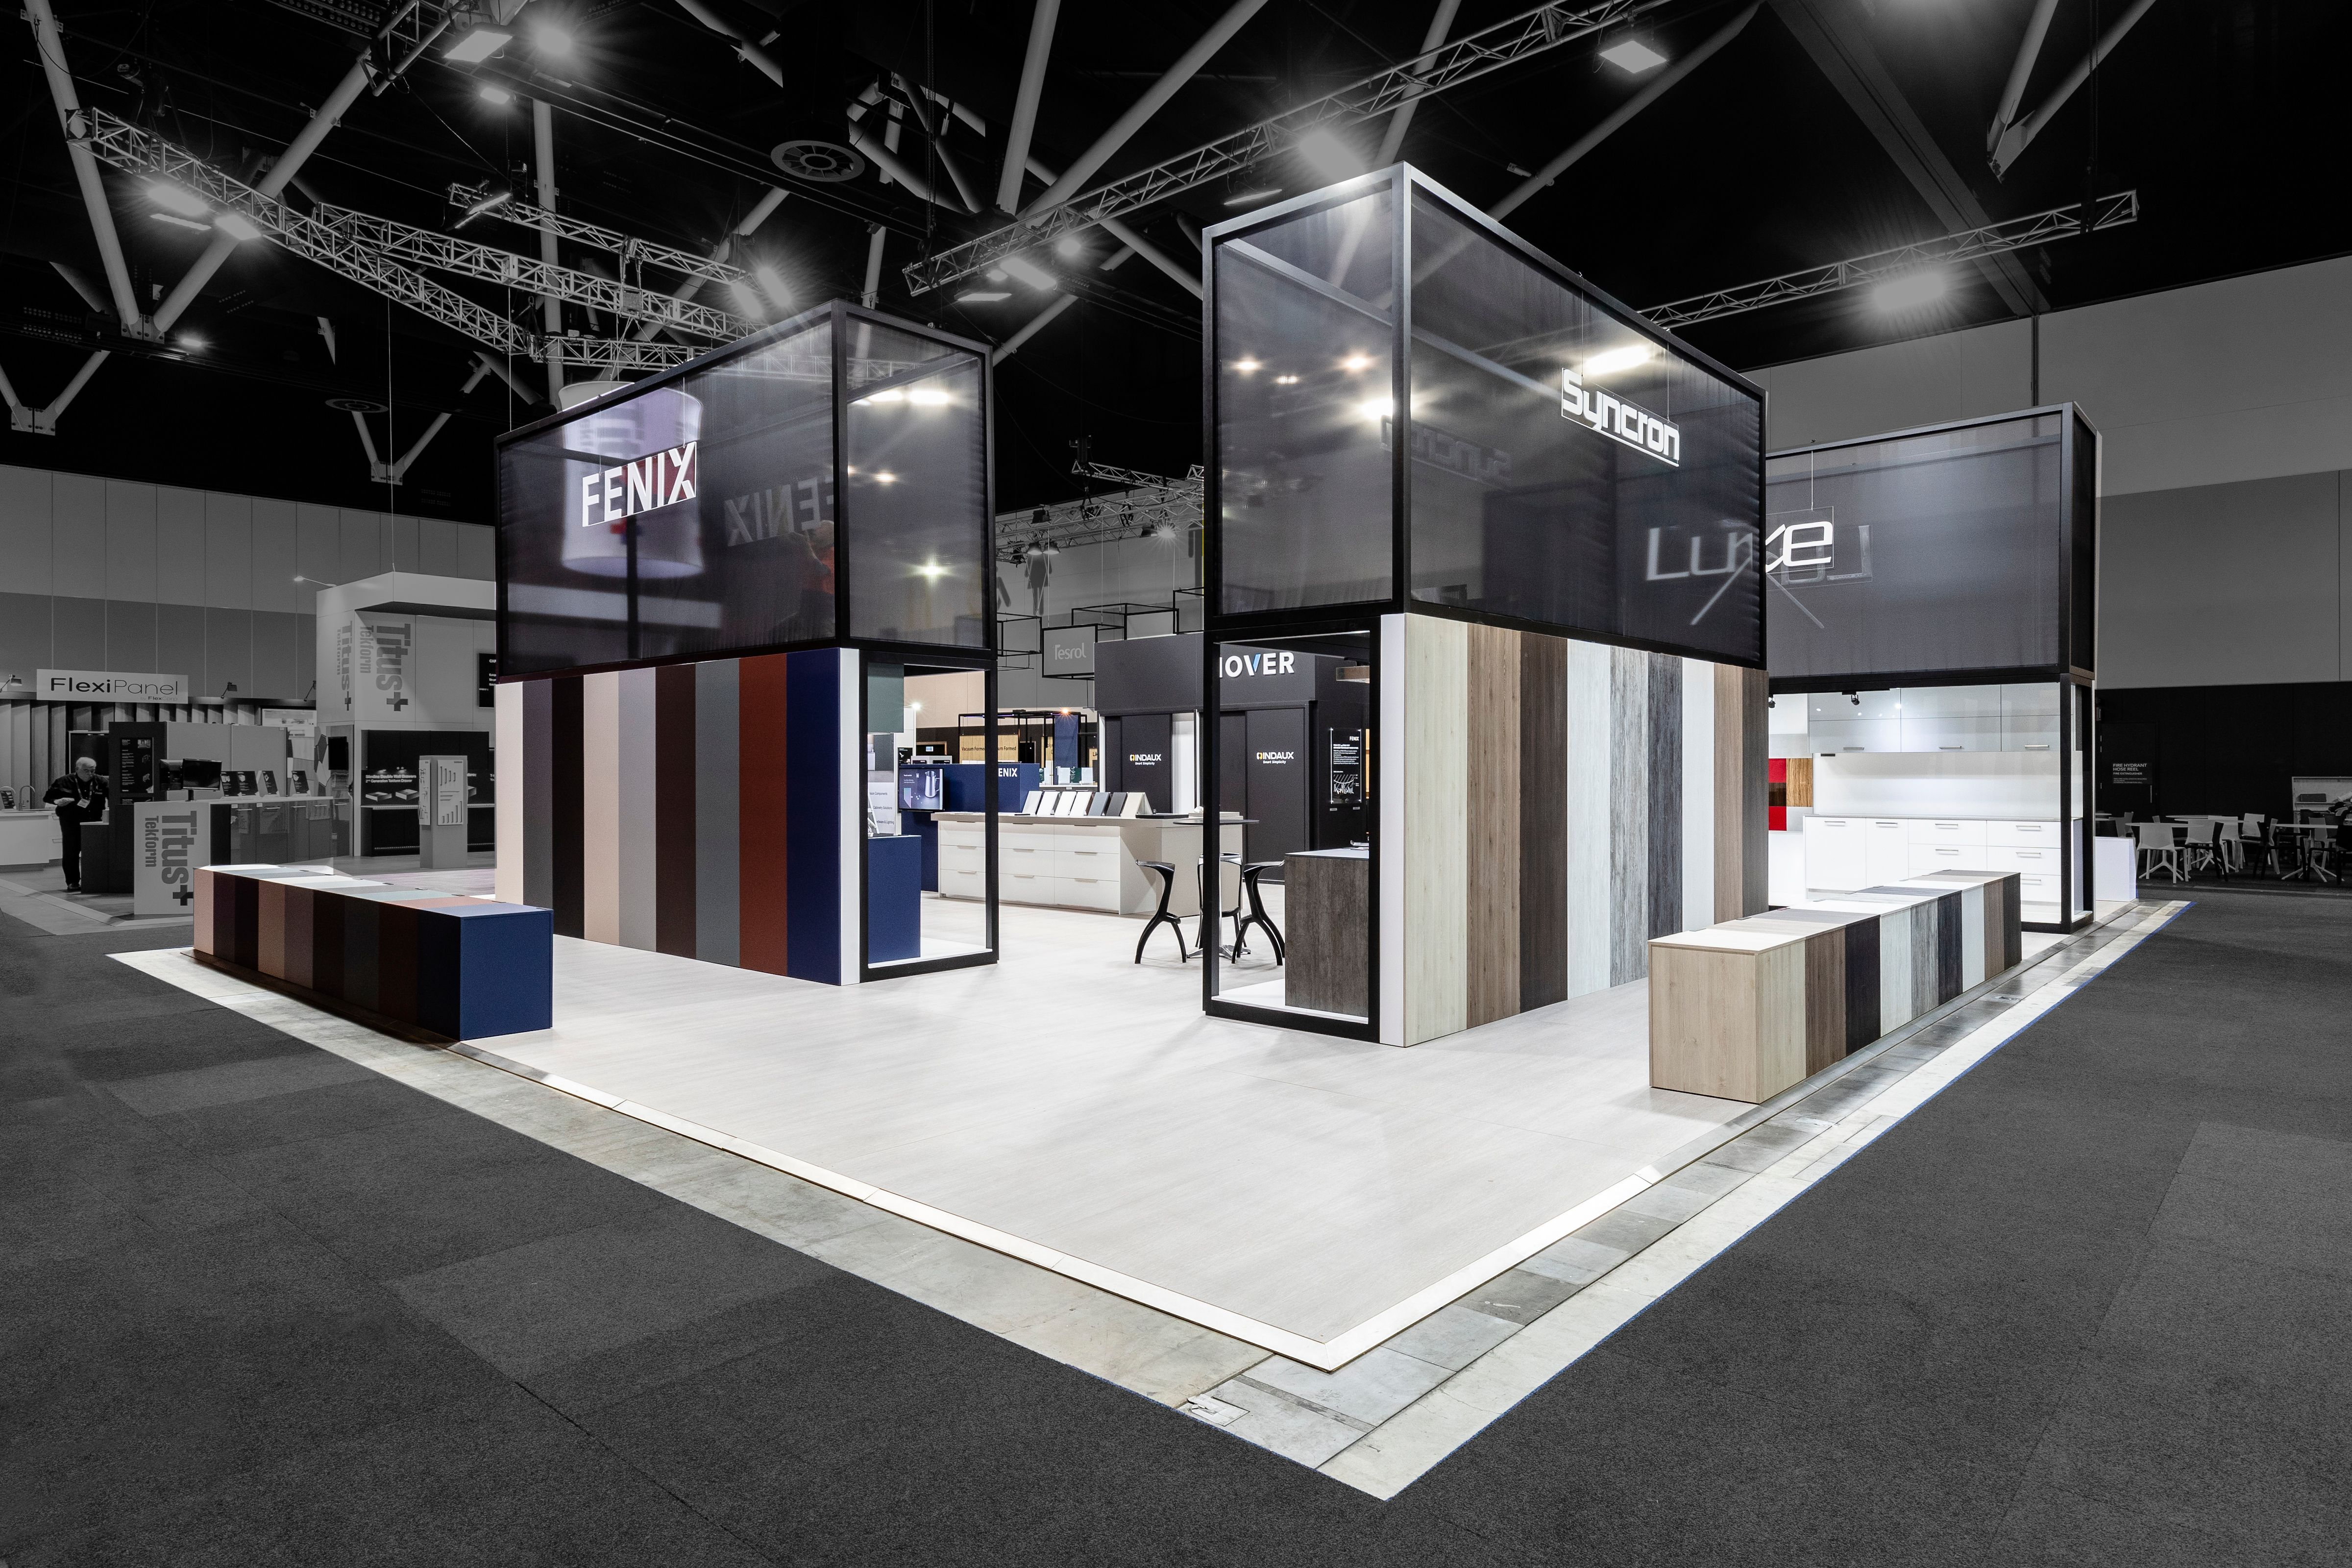 Nover Exhibition Stand At Awisa By Exhibitionco Exhibition Stand Booth Design Exhibition Booth Design